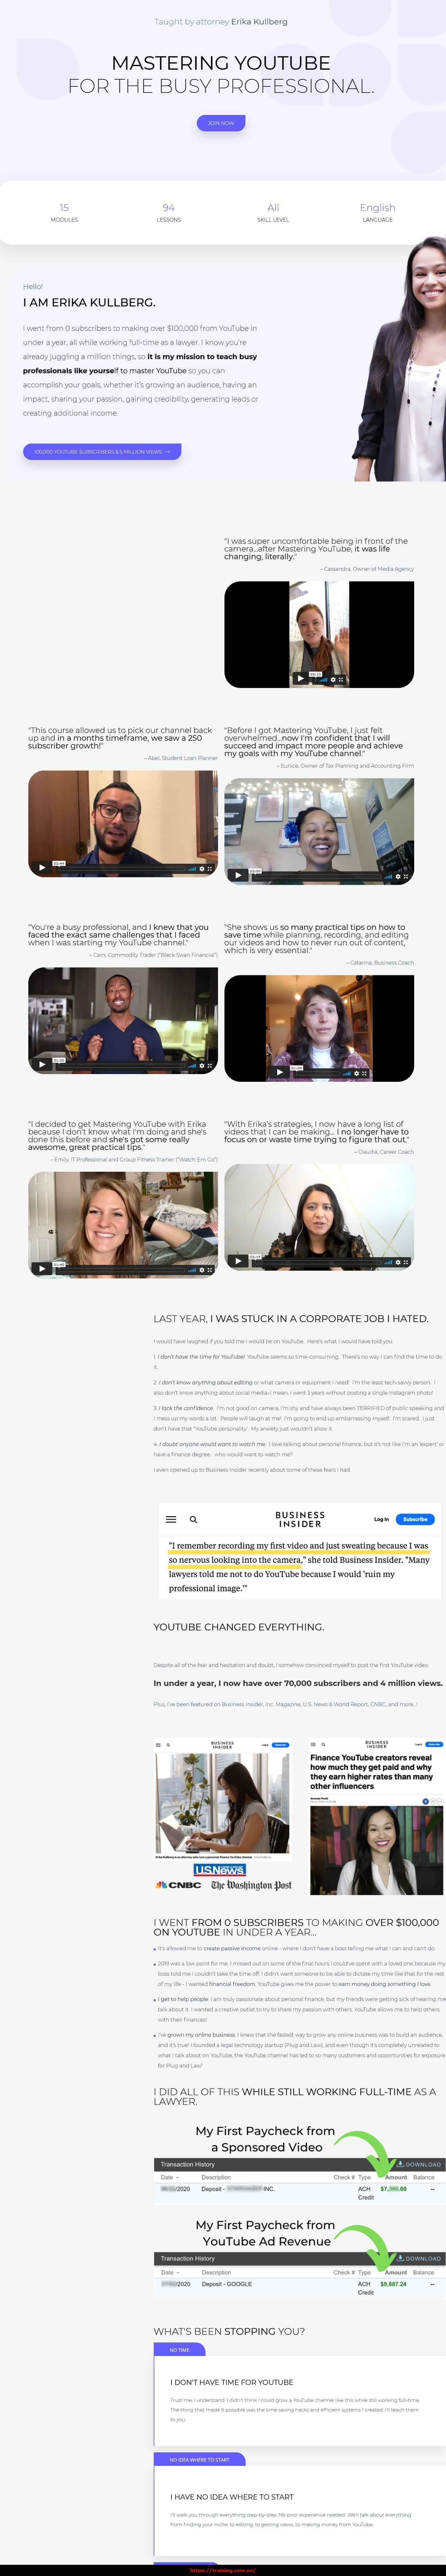 Mastering YouTube for the Busy Professional by Erika Kullberg sales page